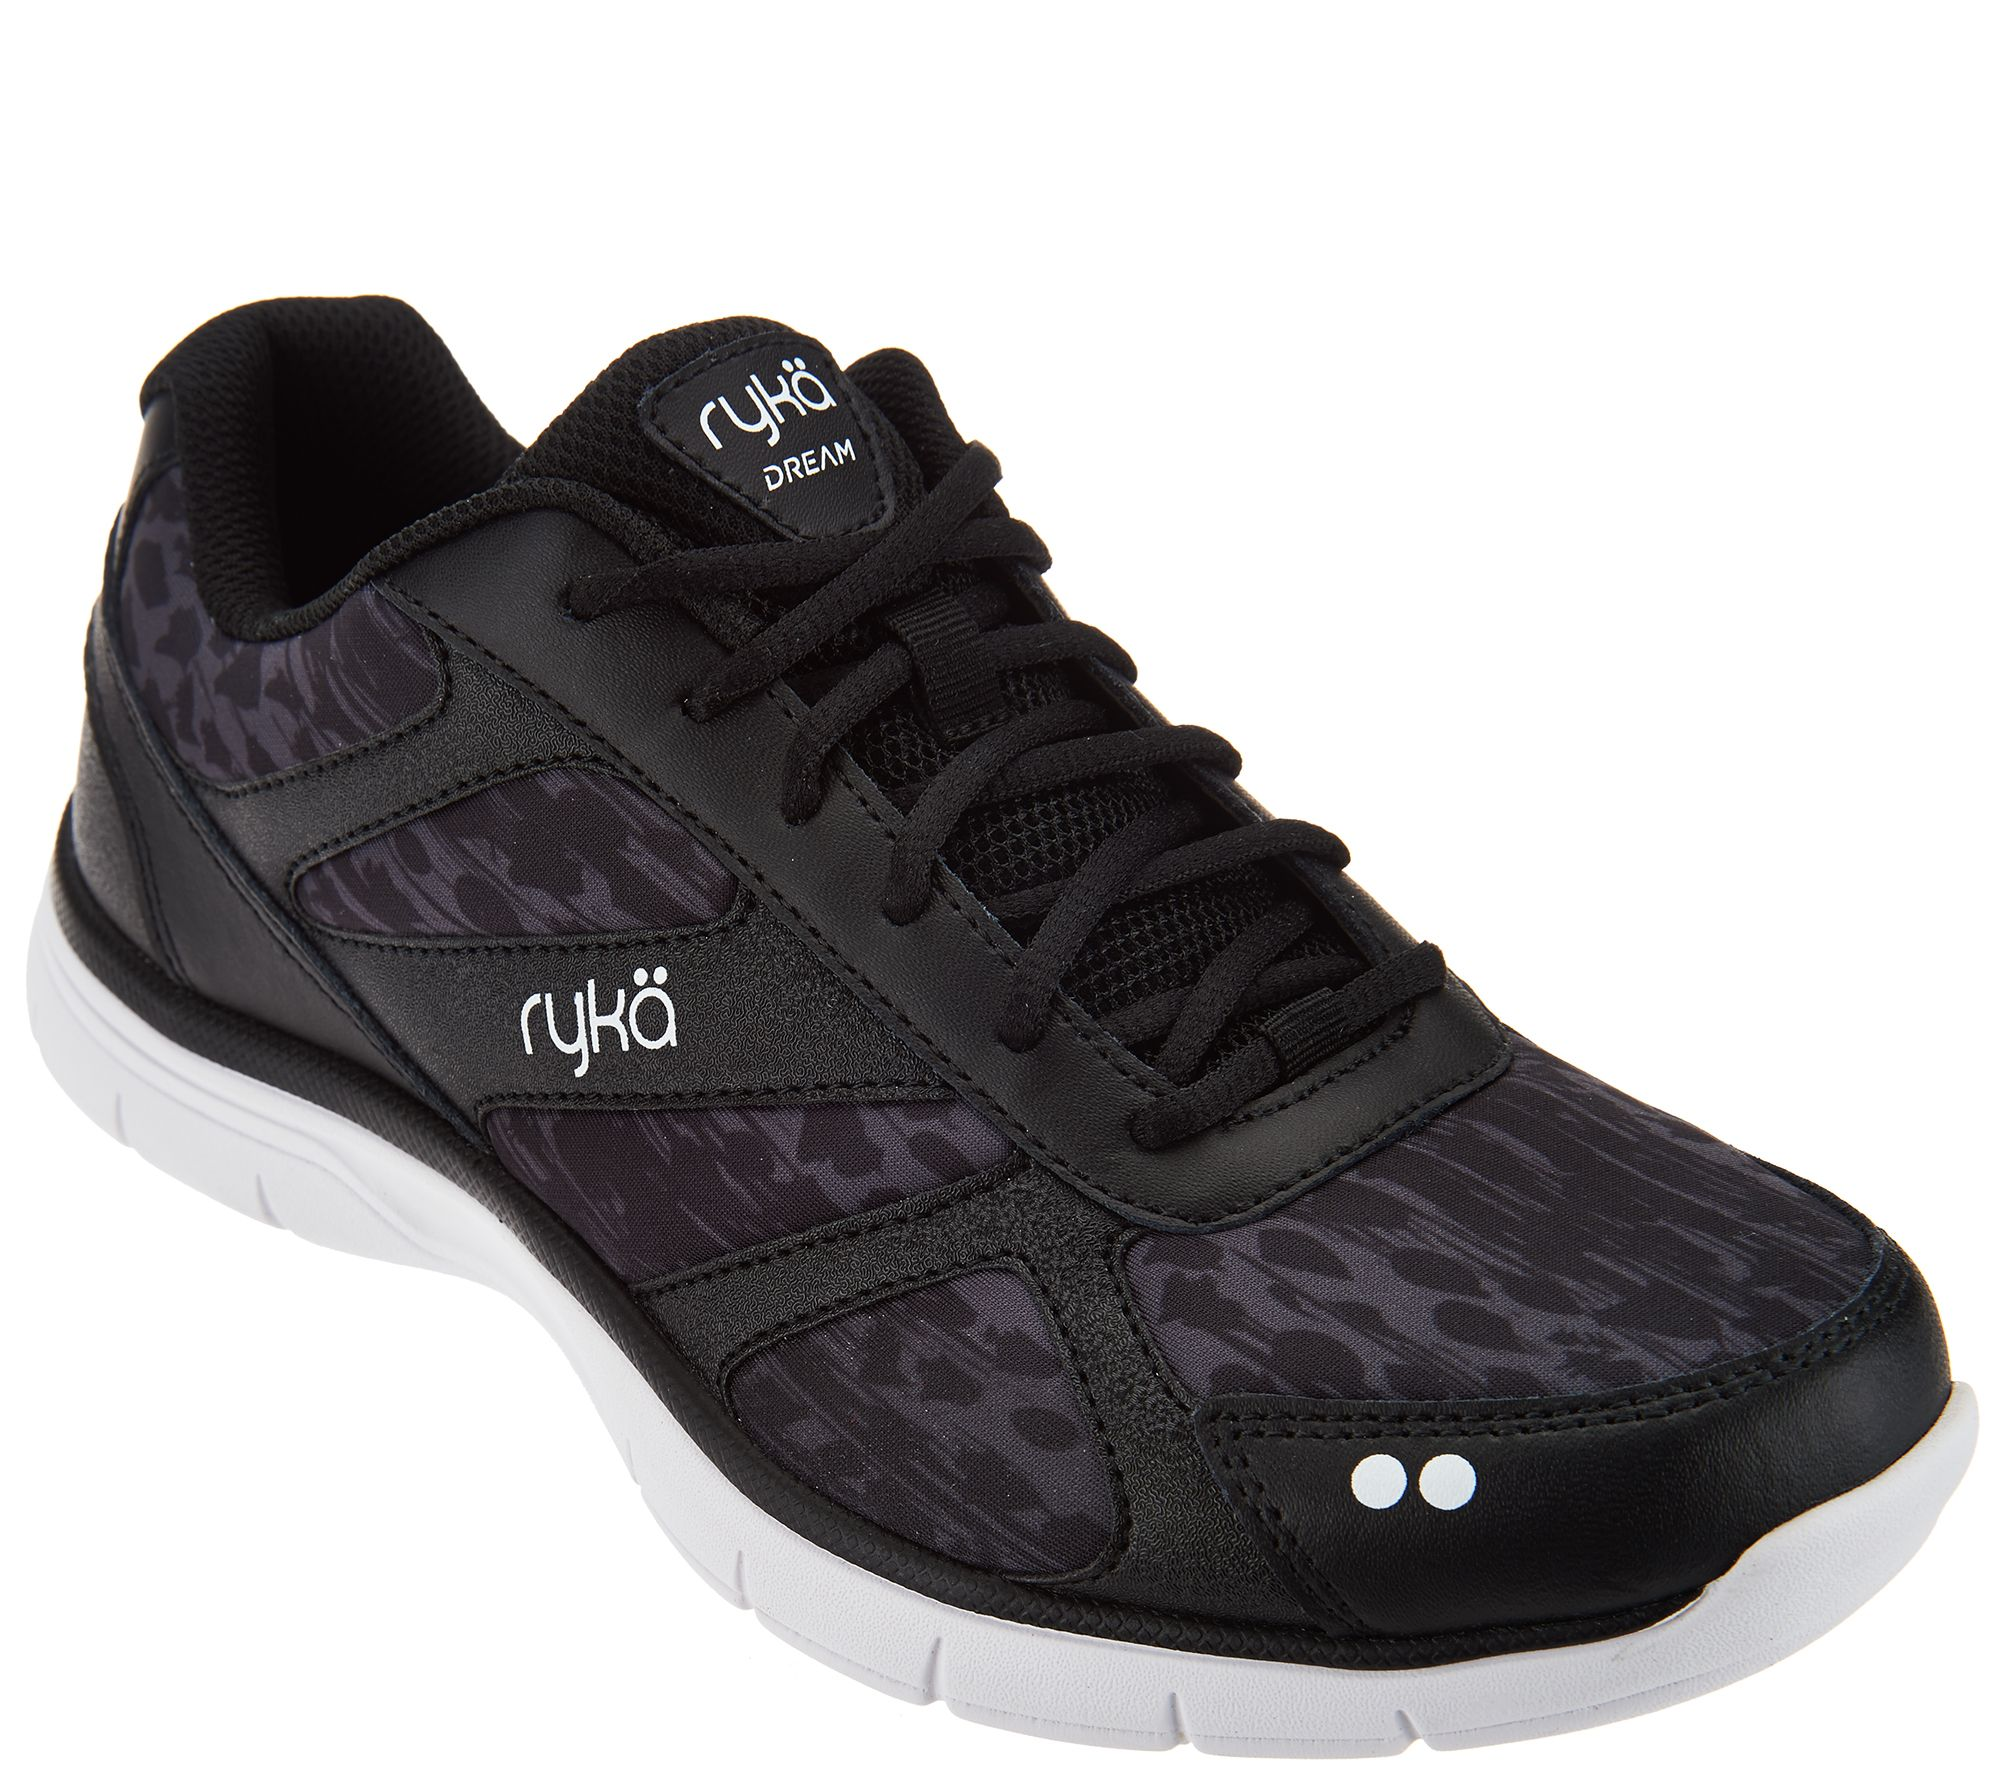 Ryka Leather and Mesh Lace-up Sneakers - Dream - Page 1 — QVC.com